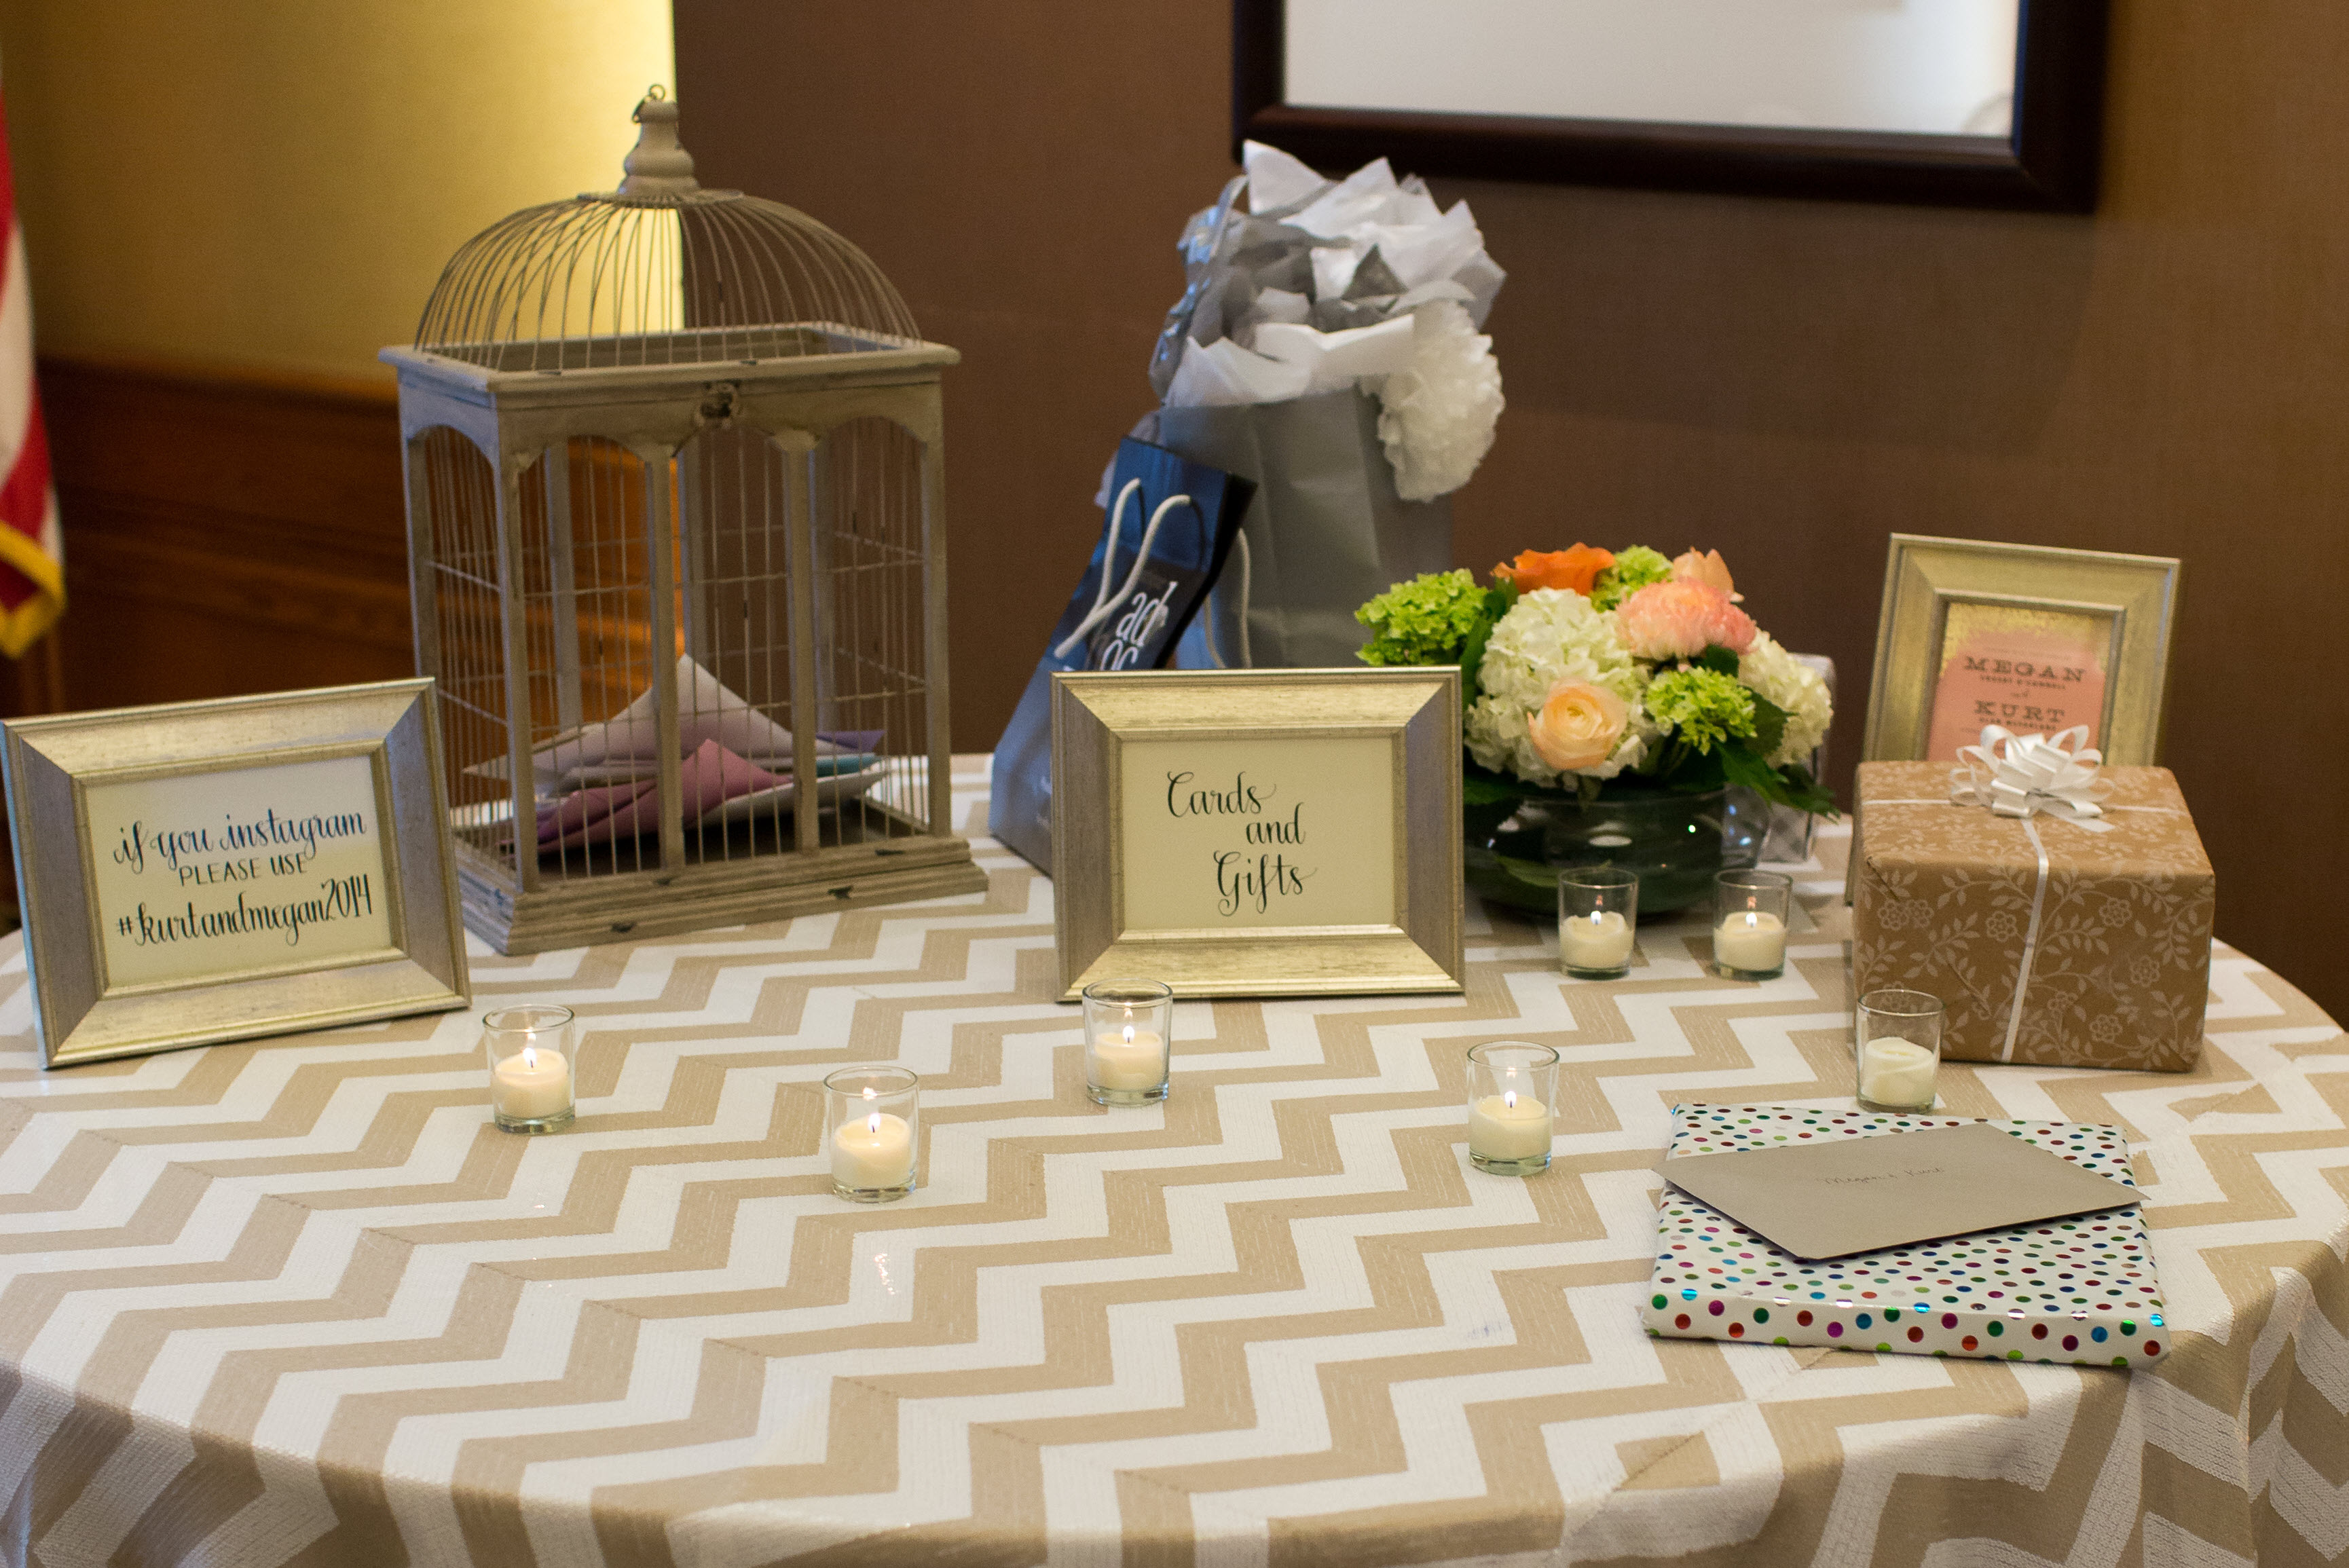 Pictures Of Wedding Gift Tables : Chicago wedding gift table